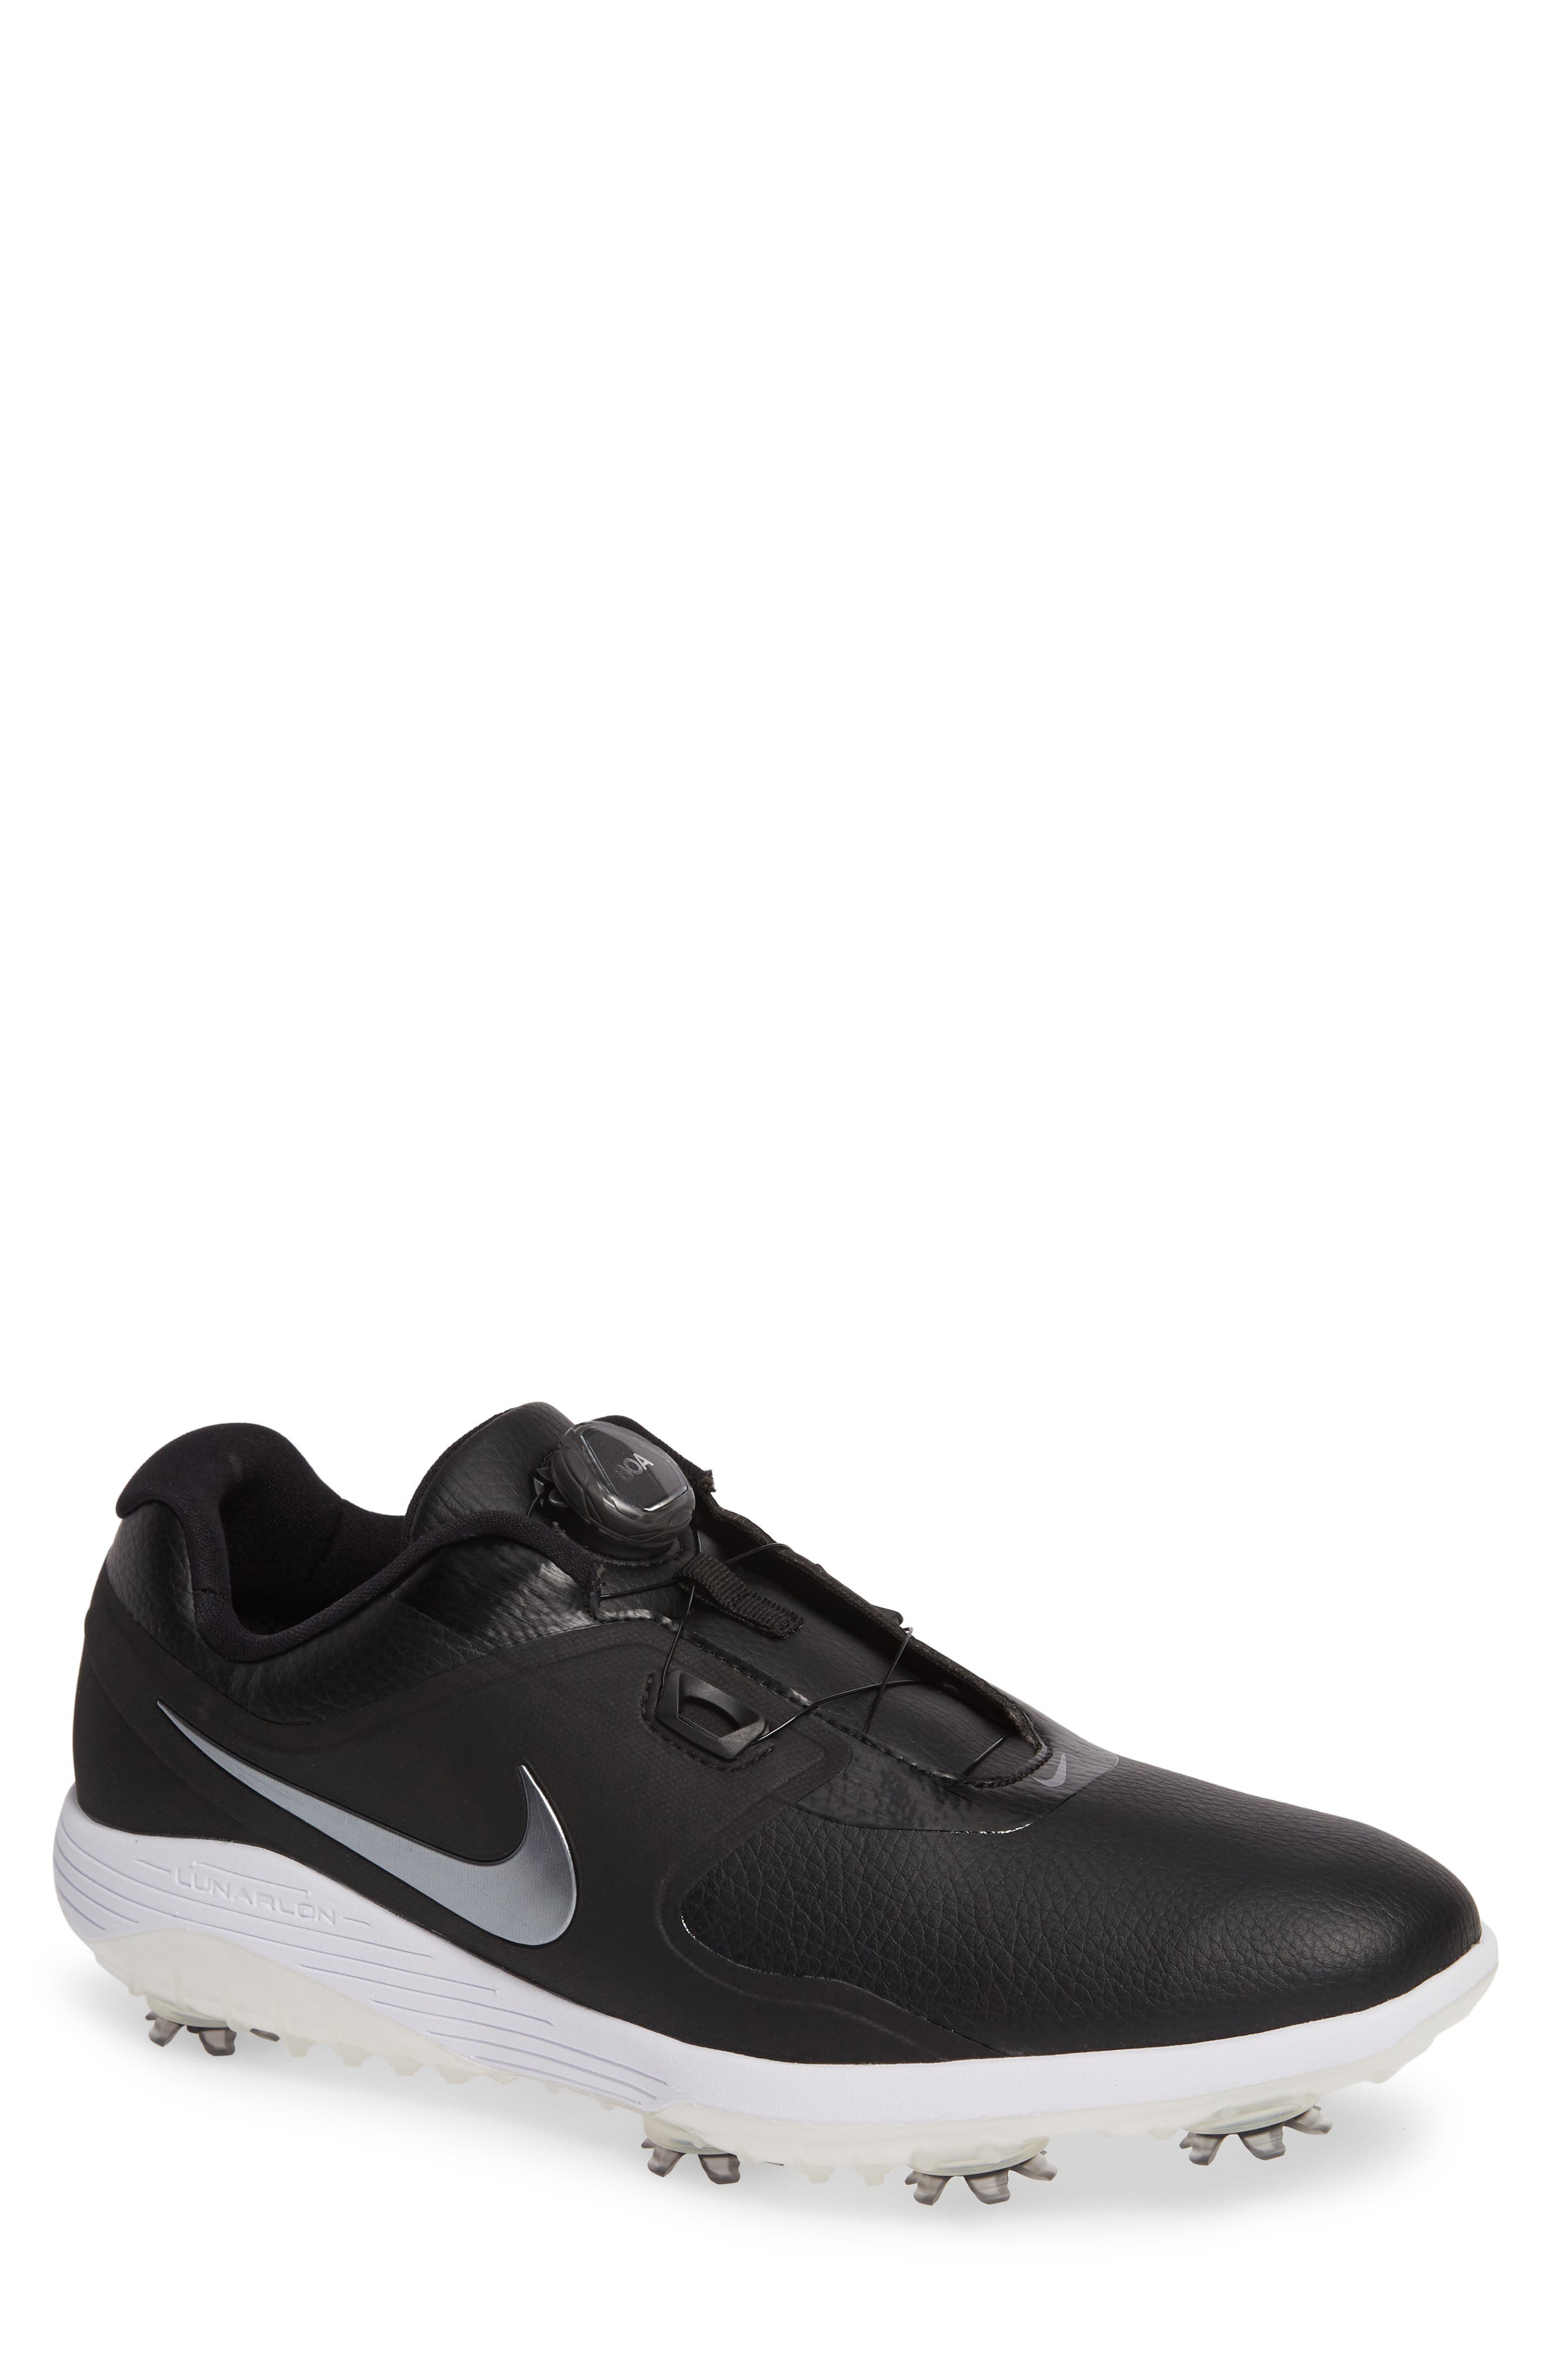 NIKE,                             Vapor Pro BOA Waterproof Golf Shoe,                             Main thumbnail 1, color,                             BLACK/ COOL GREY/ WHITE